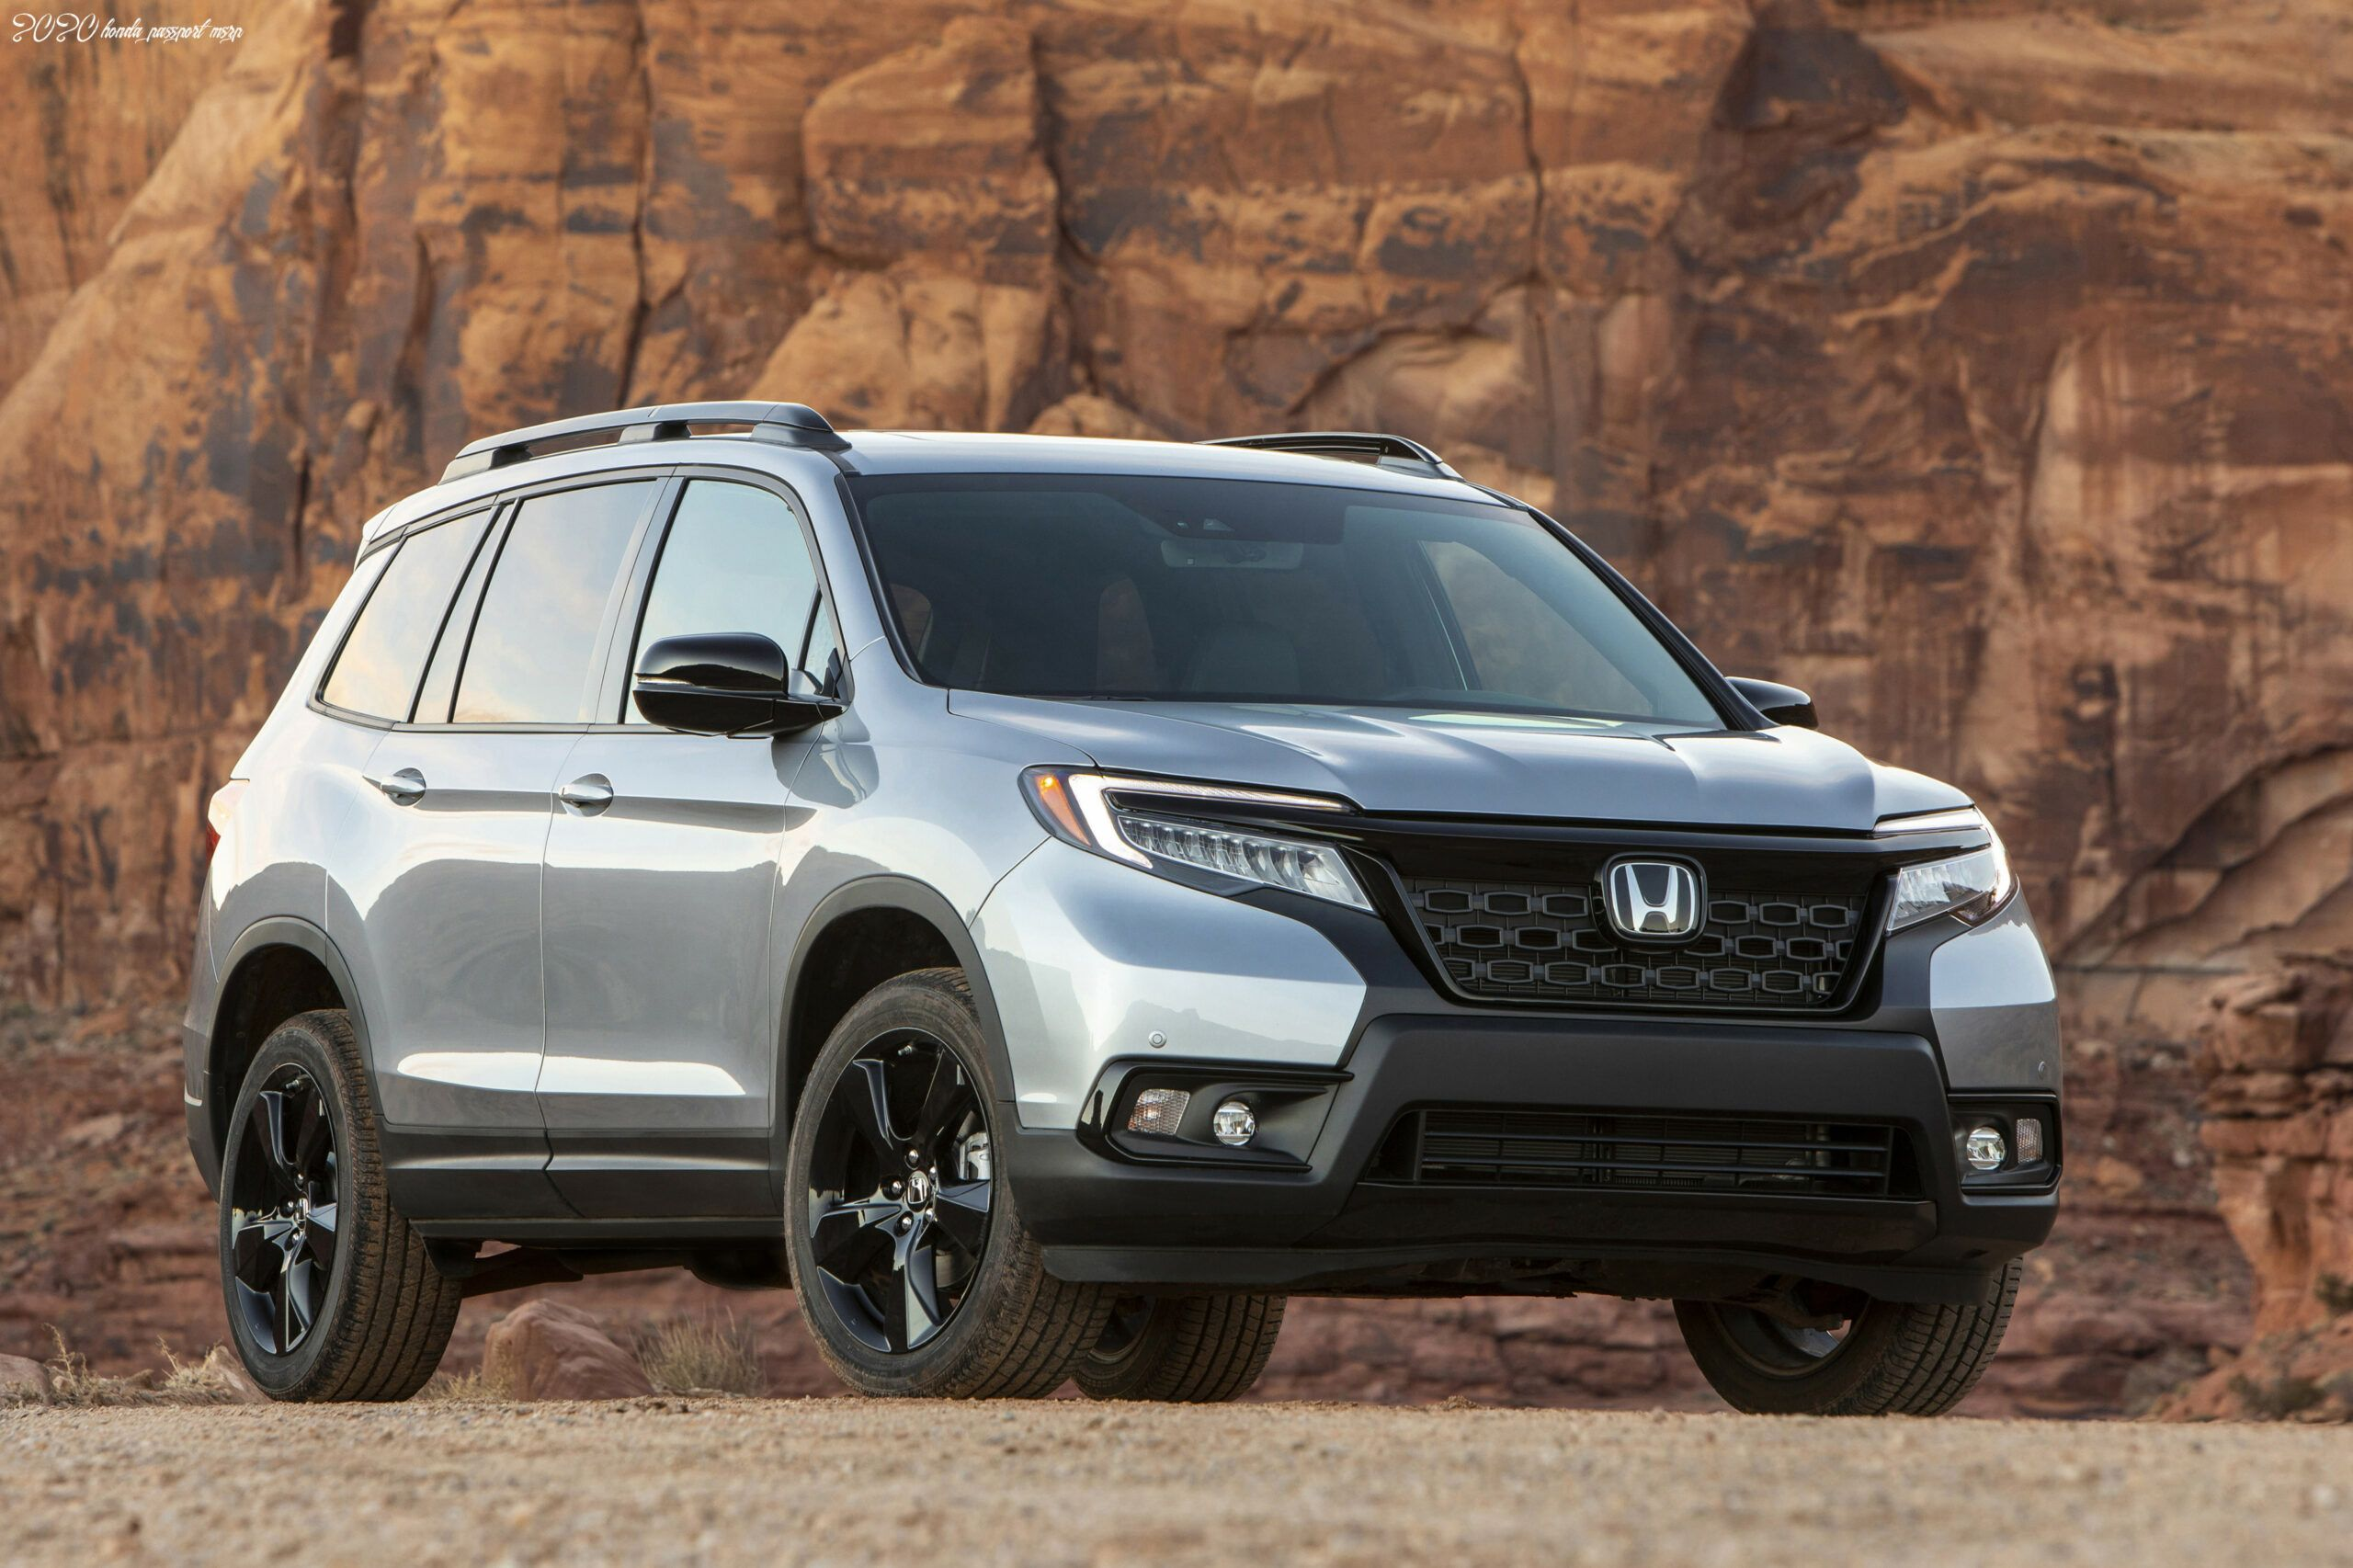 2020 Honda Passport Msrp In 2020 Honda Passport Honda Honda Cars